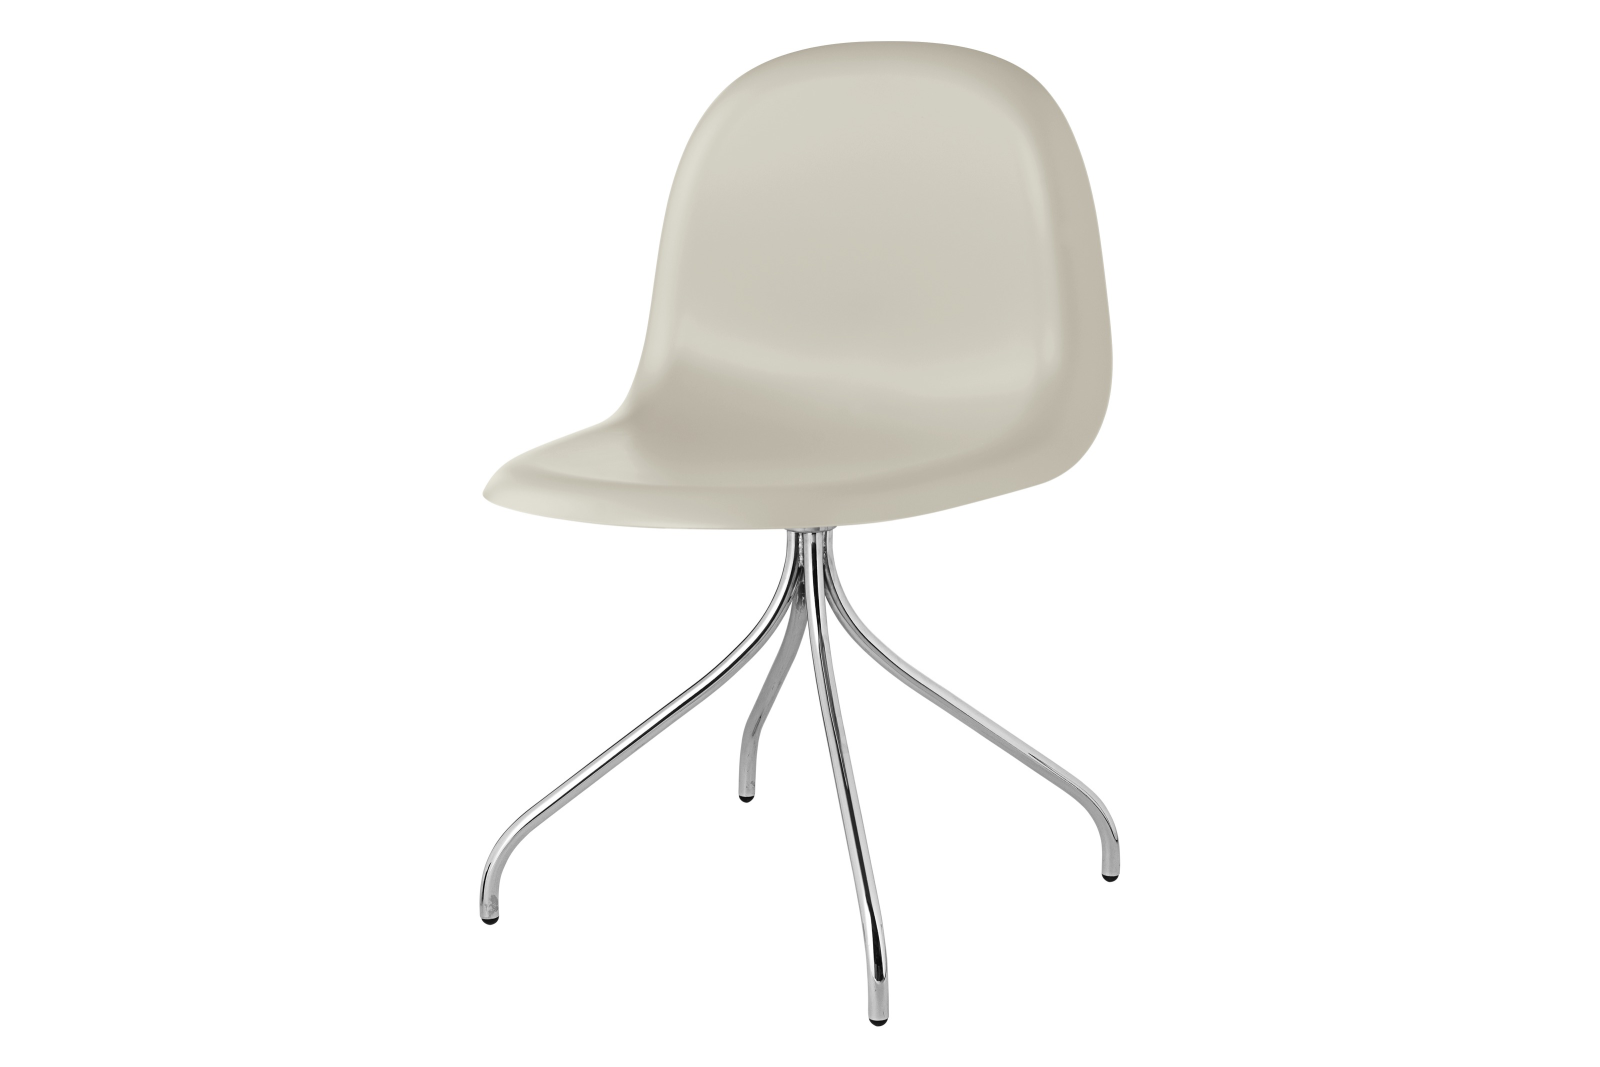 Gubi 3D Swivel Base Dining Chair - Unupholstered Gubi HiRek Moon Grey, Gubi Metal Chrome